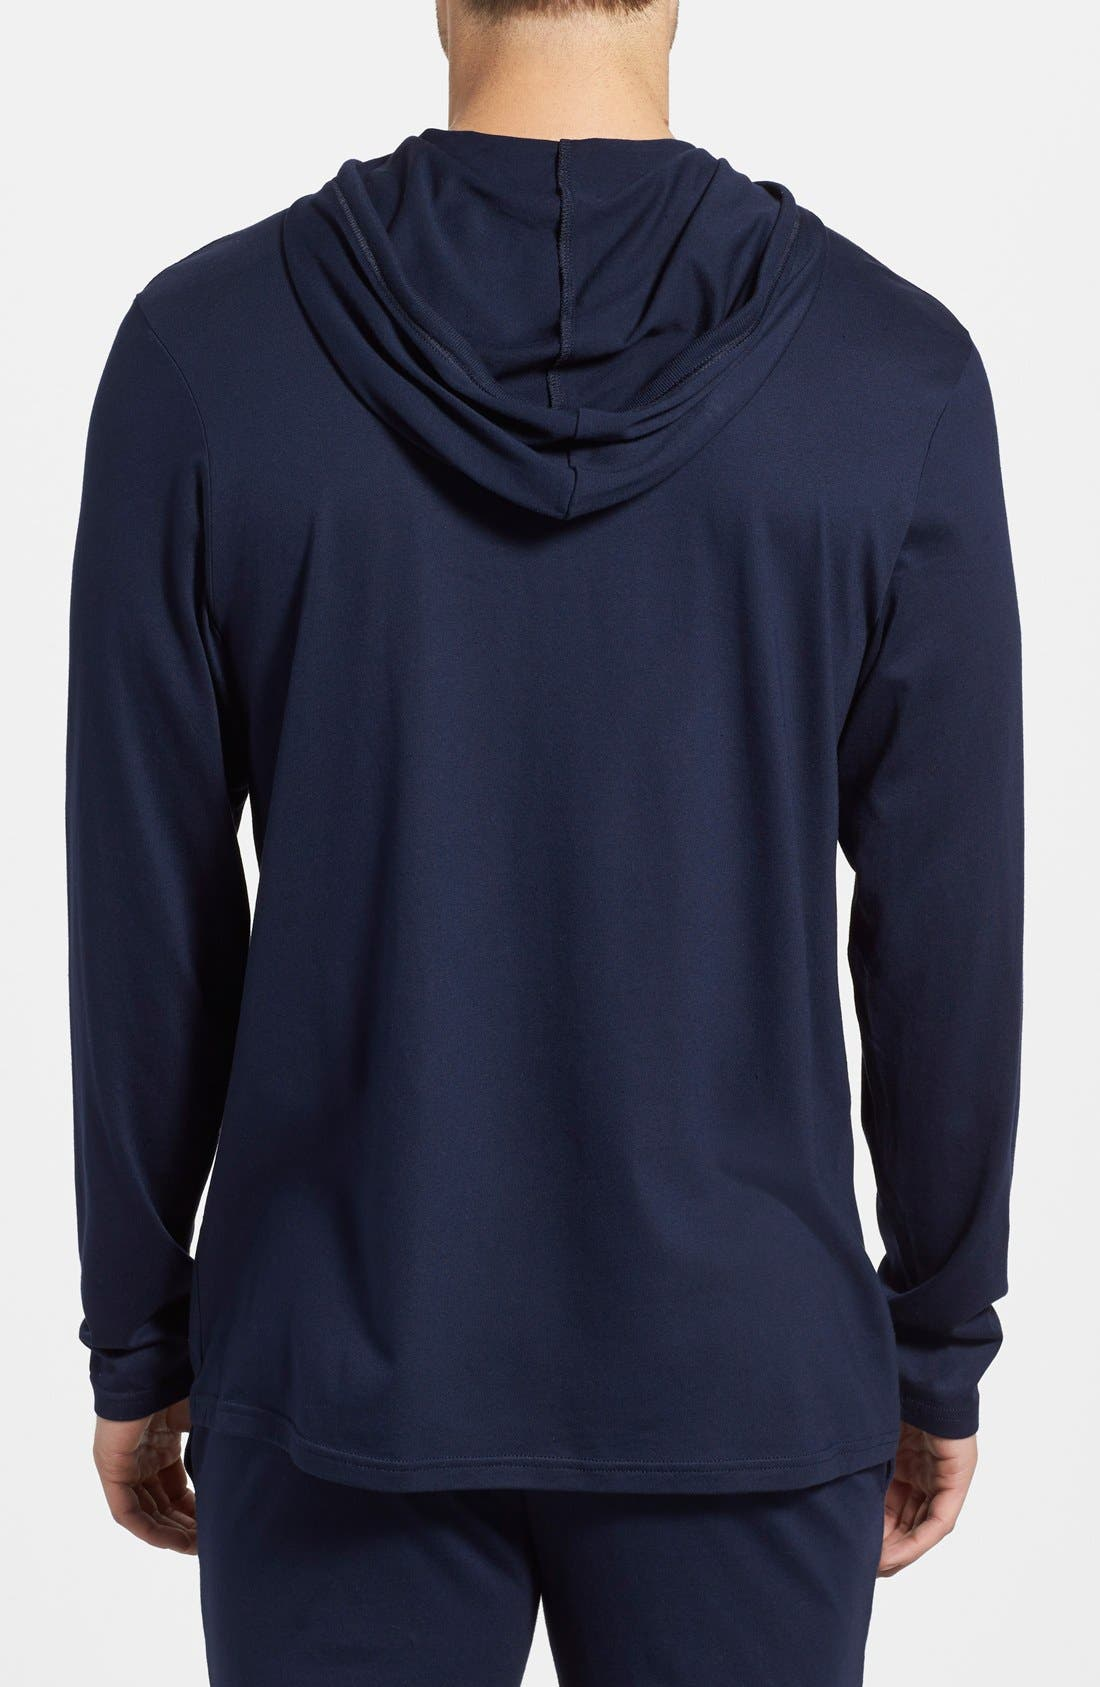 Pullover Hoodie,                             Alternate thumbnail 2, color,                             Cruise Navy